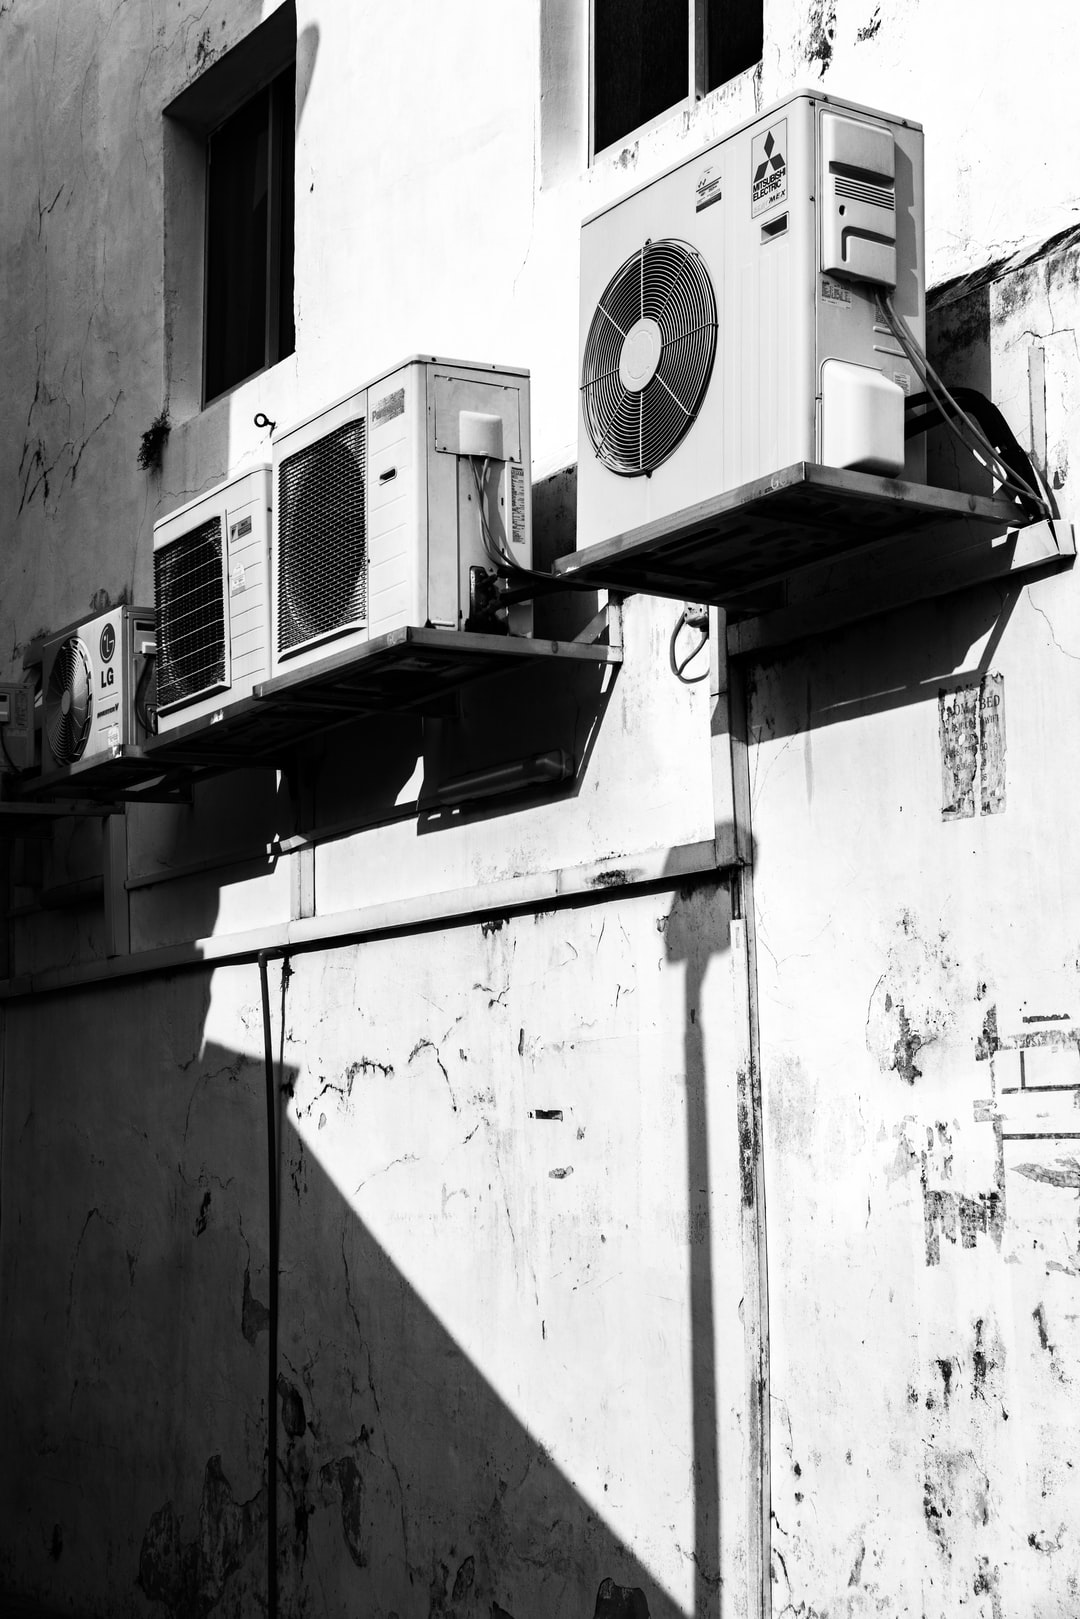 How Much Does AC Repair Usually Cost?